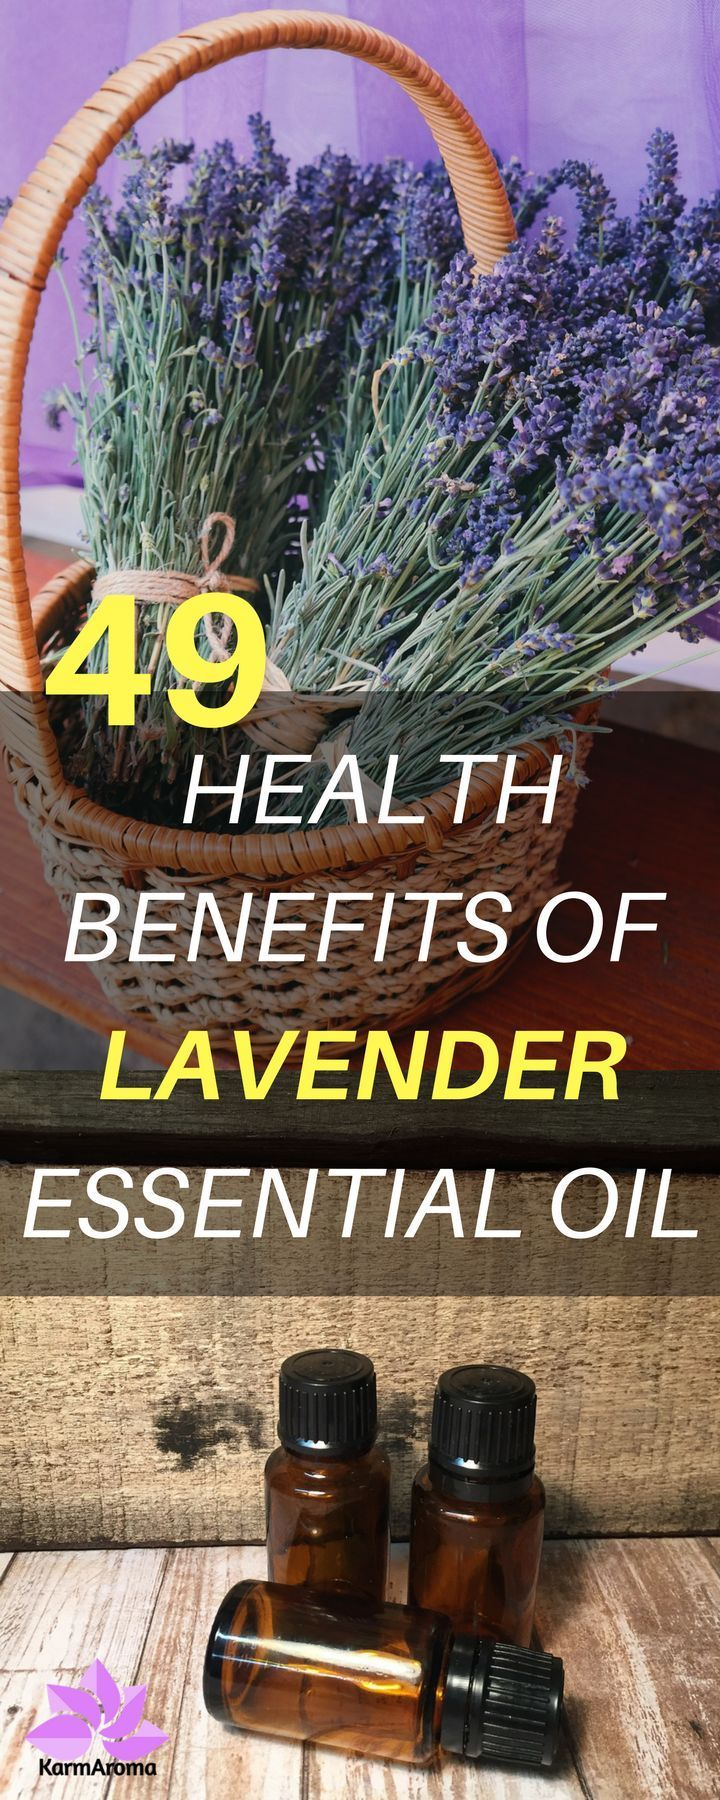 Are you looking for best ways to use lavender essential oil? You will be amazed how much you could get health benefits by applying lavender oil. Read this 49 Amazing Health Benefits of Lavender Essential Oil.